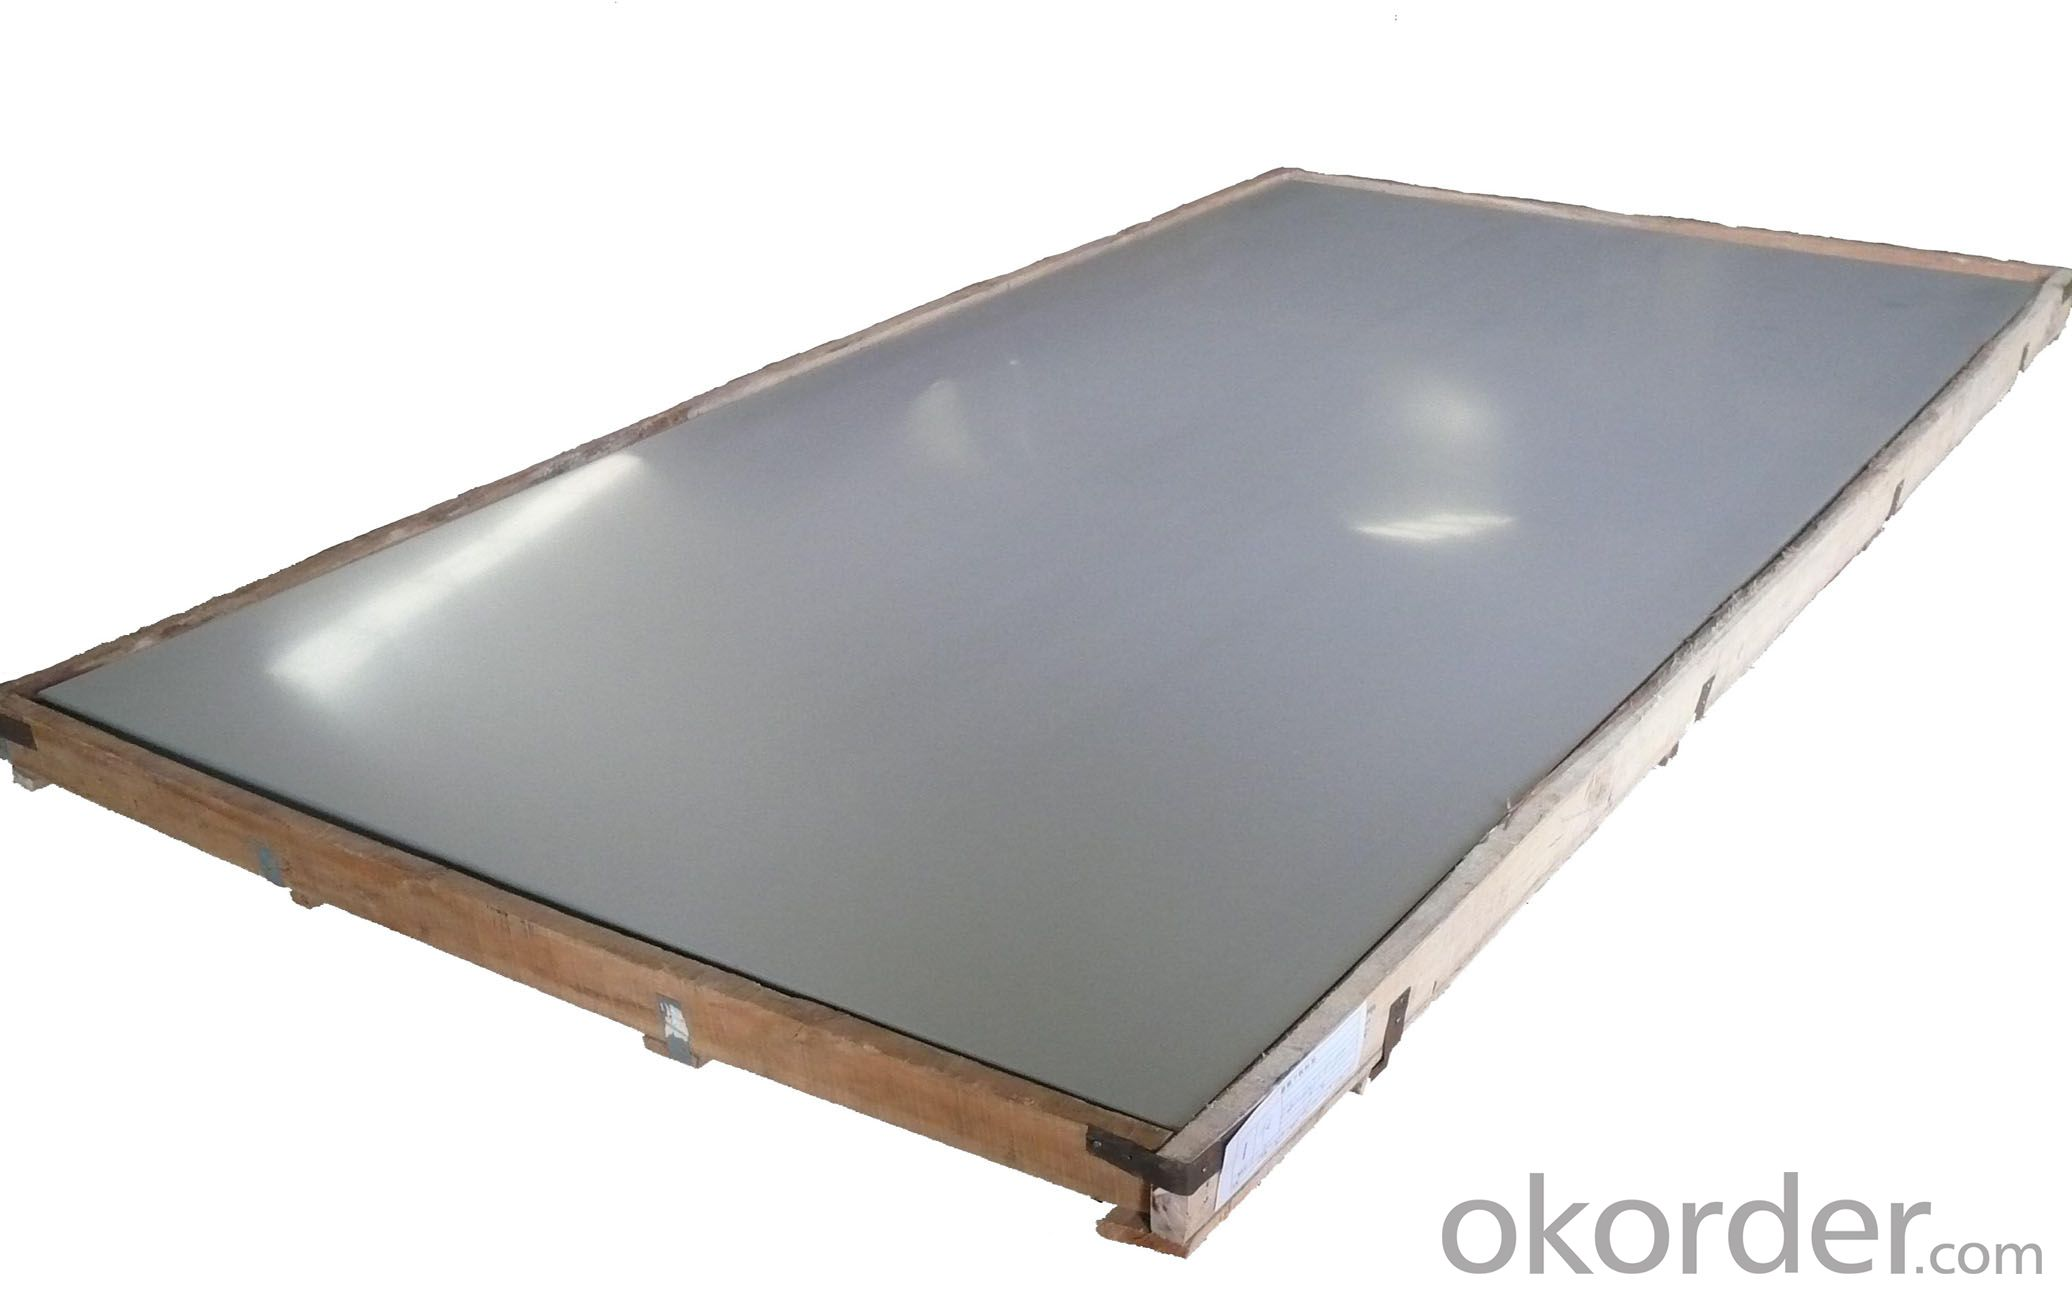 Corrosion resistant plate 304l